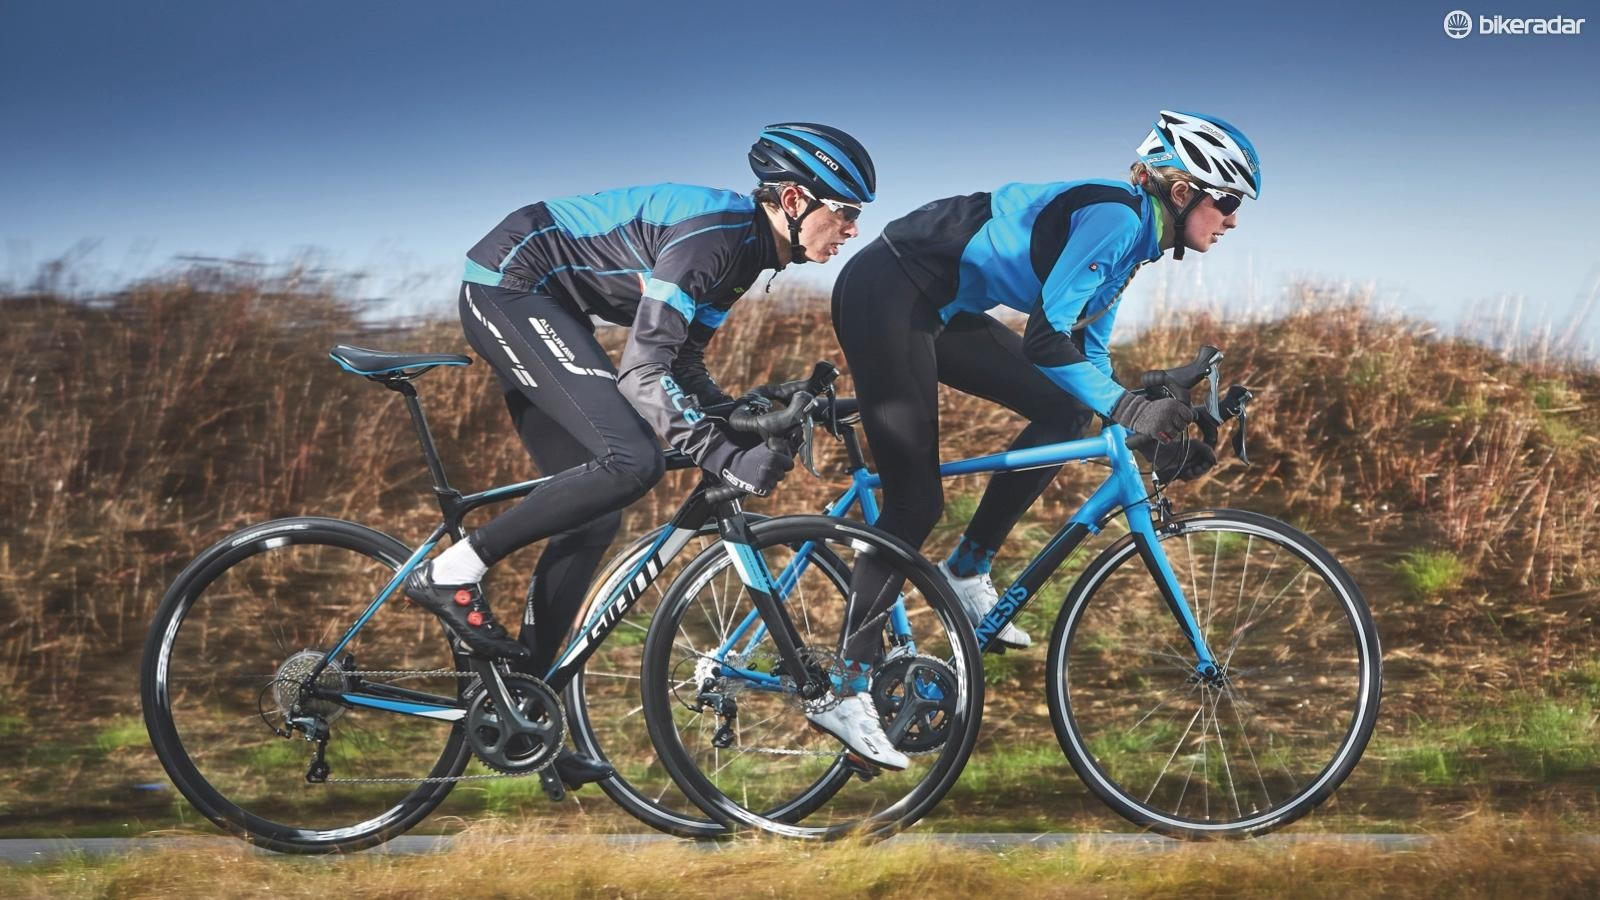 Getting the correct frame size is vital when buying your bike